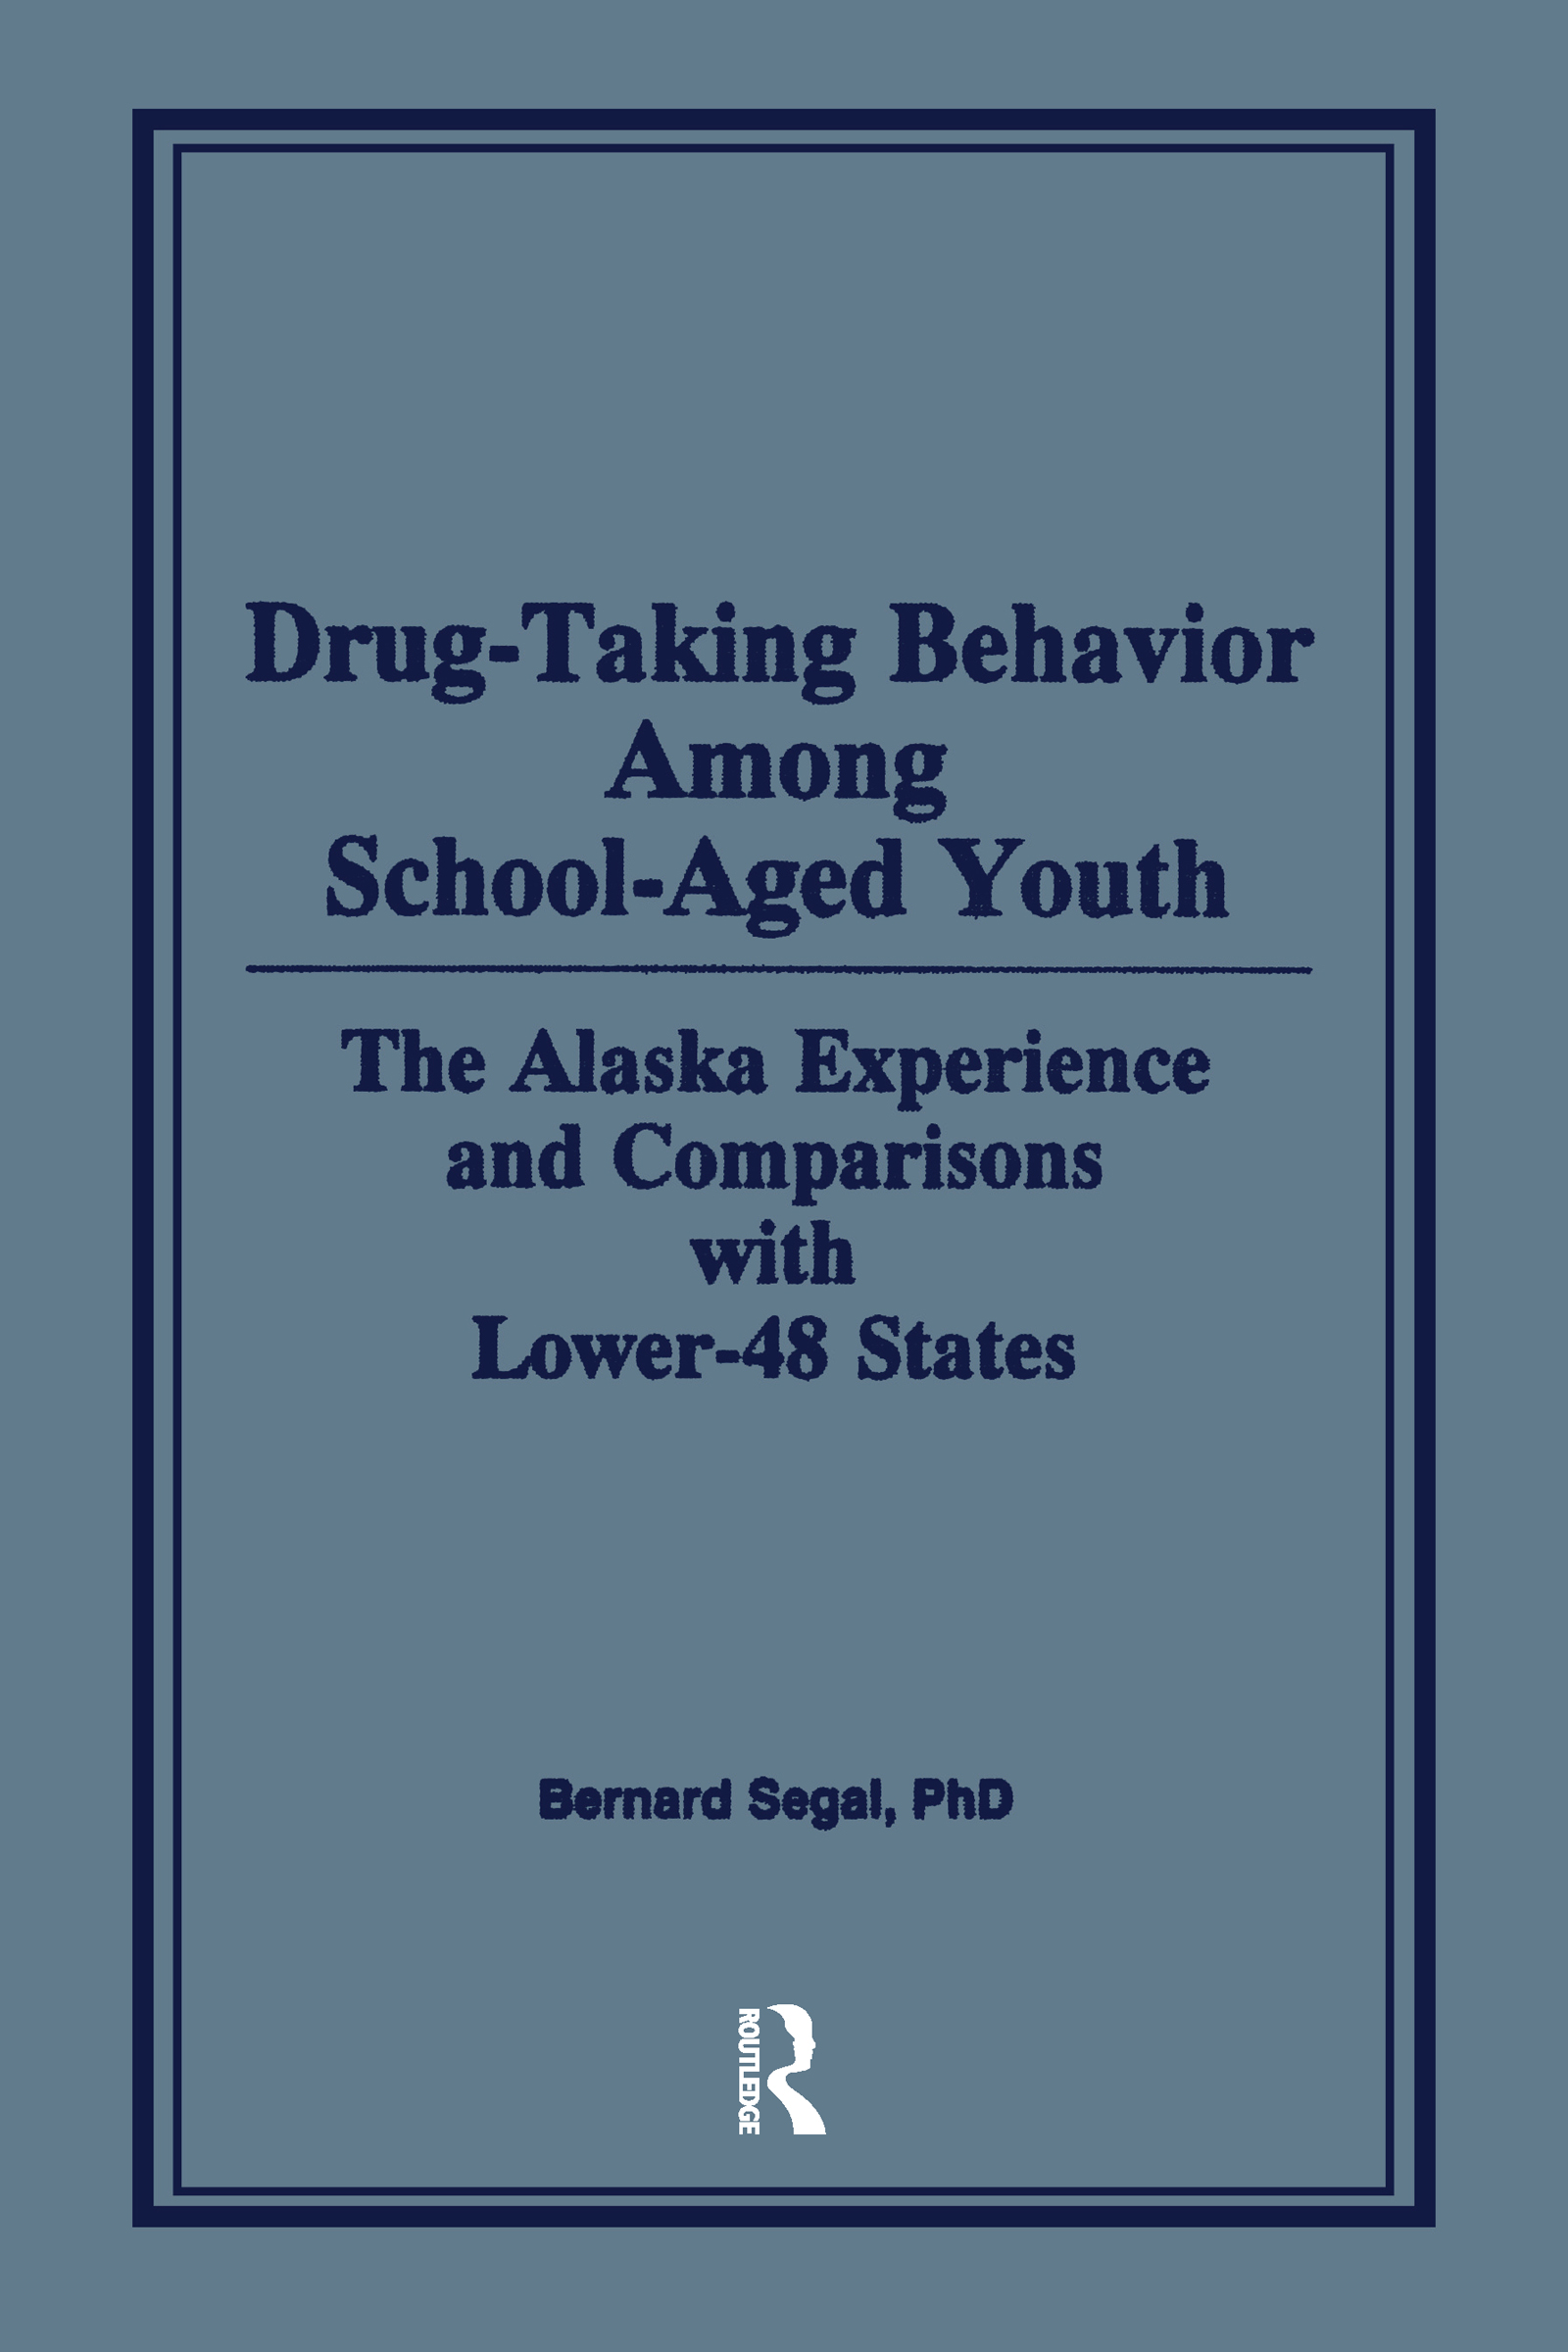 Drug-Taking Behavior Among School-Aged Youth: The Alaska Experience and Comparisons With Lower-48 States book cover